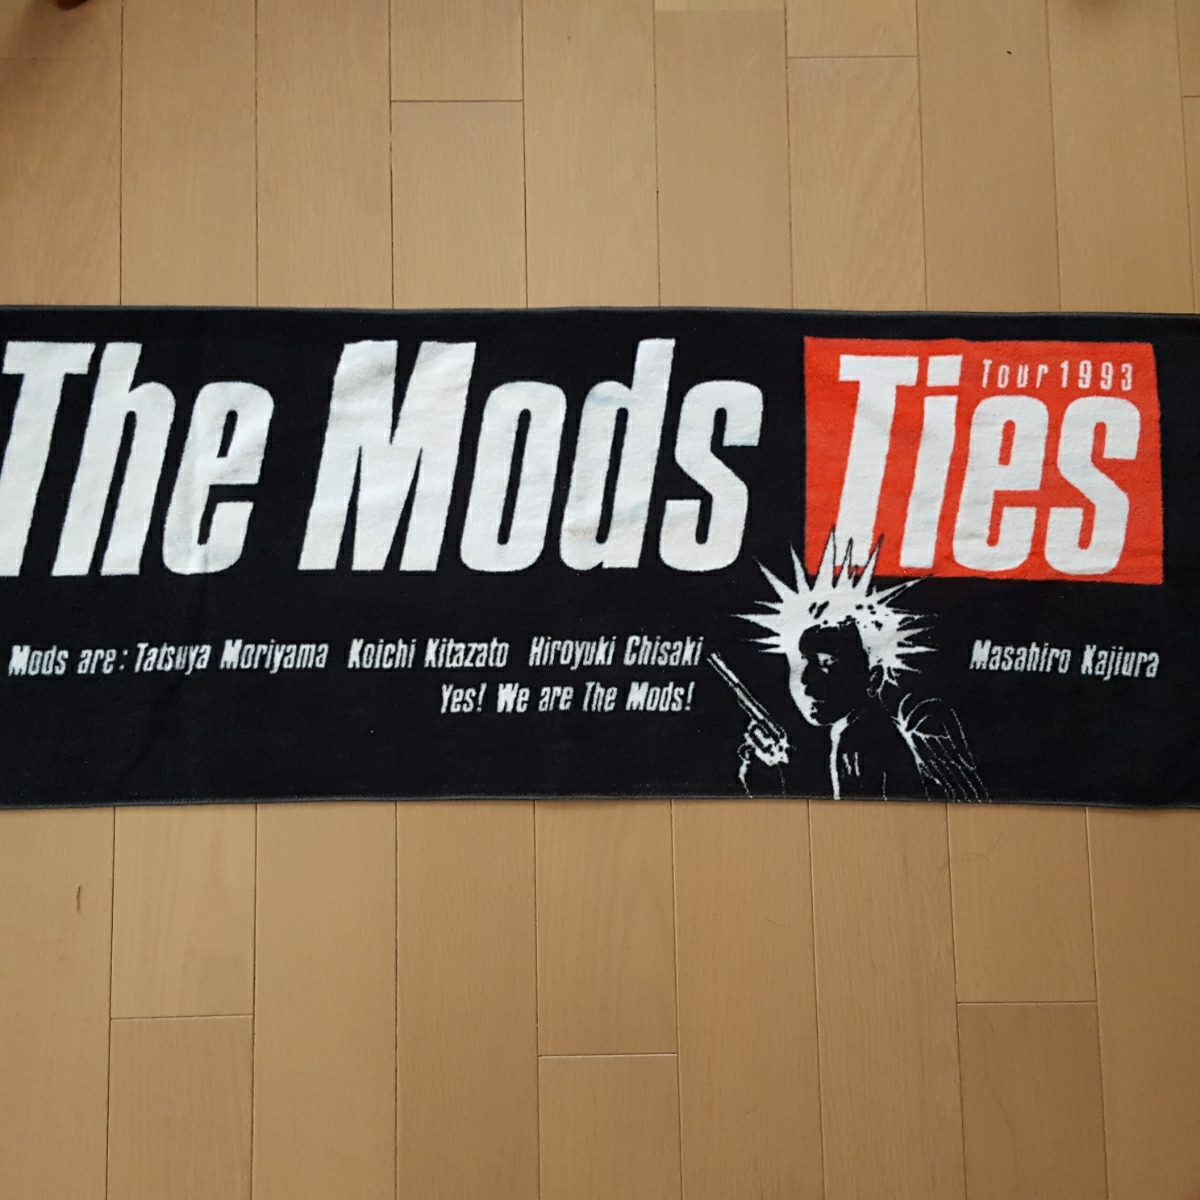 THE MODS ツアーグッズ タオル TIES ザ・モッズ 森山達也